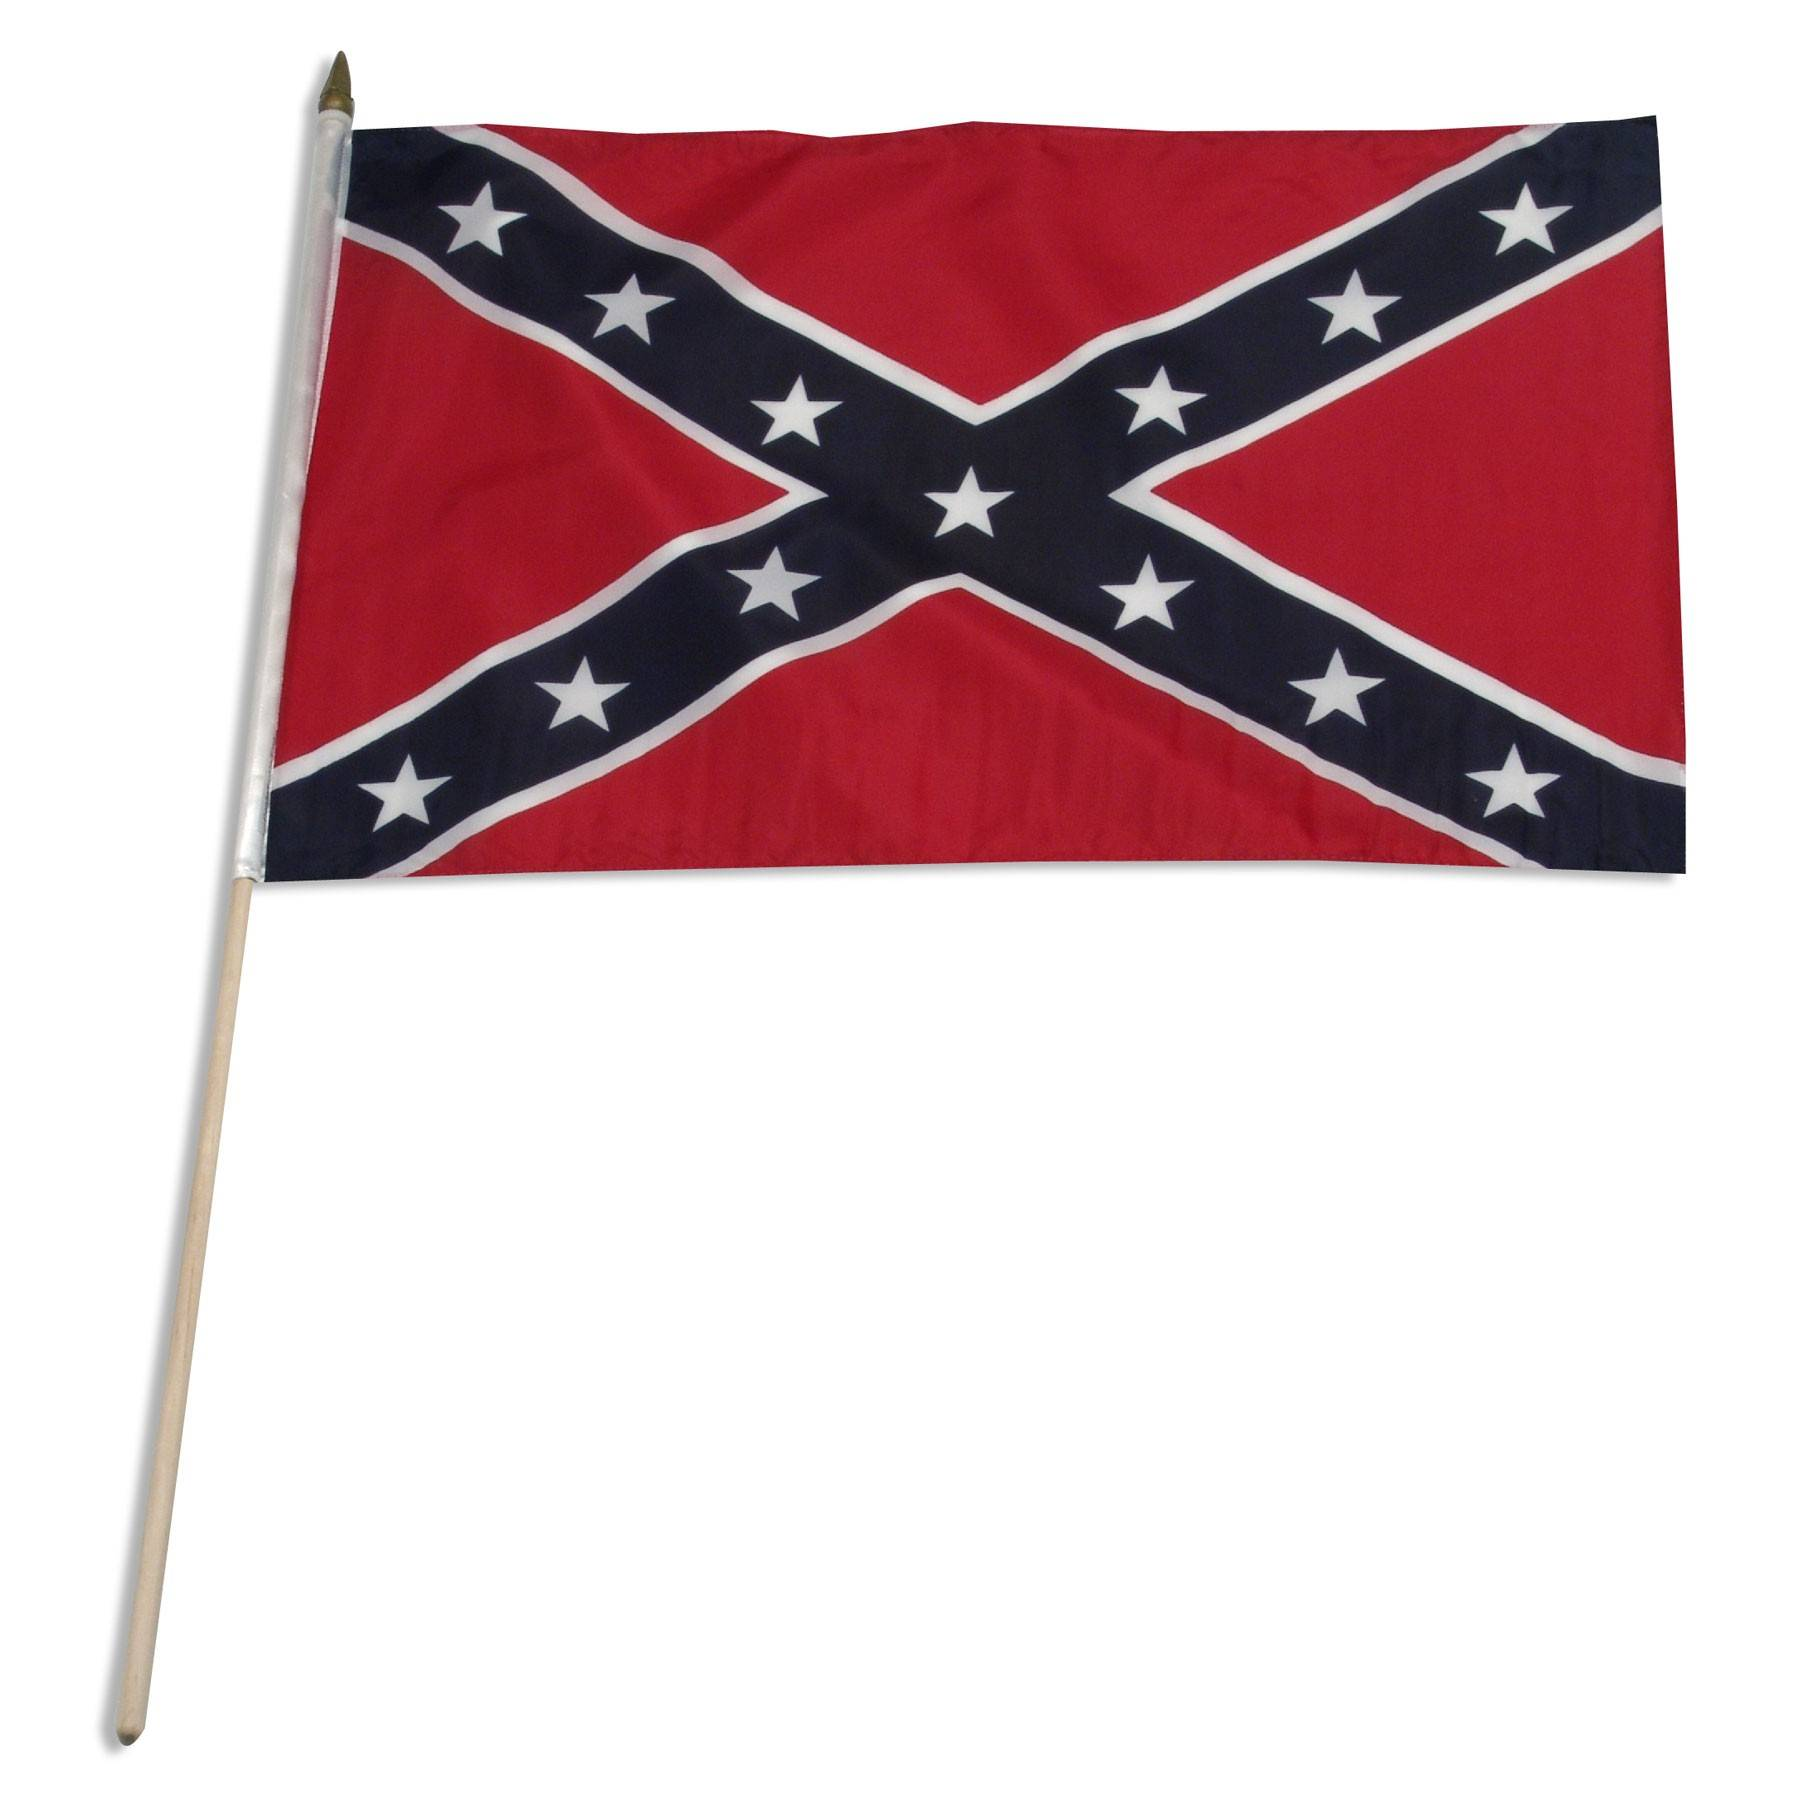 "Rebel Flag - Confederate Flag  12"" x 18"" Mounted Flags"